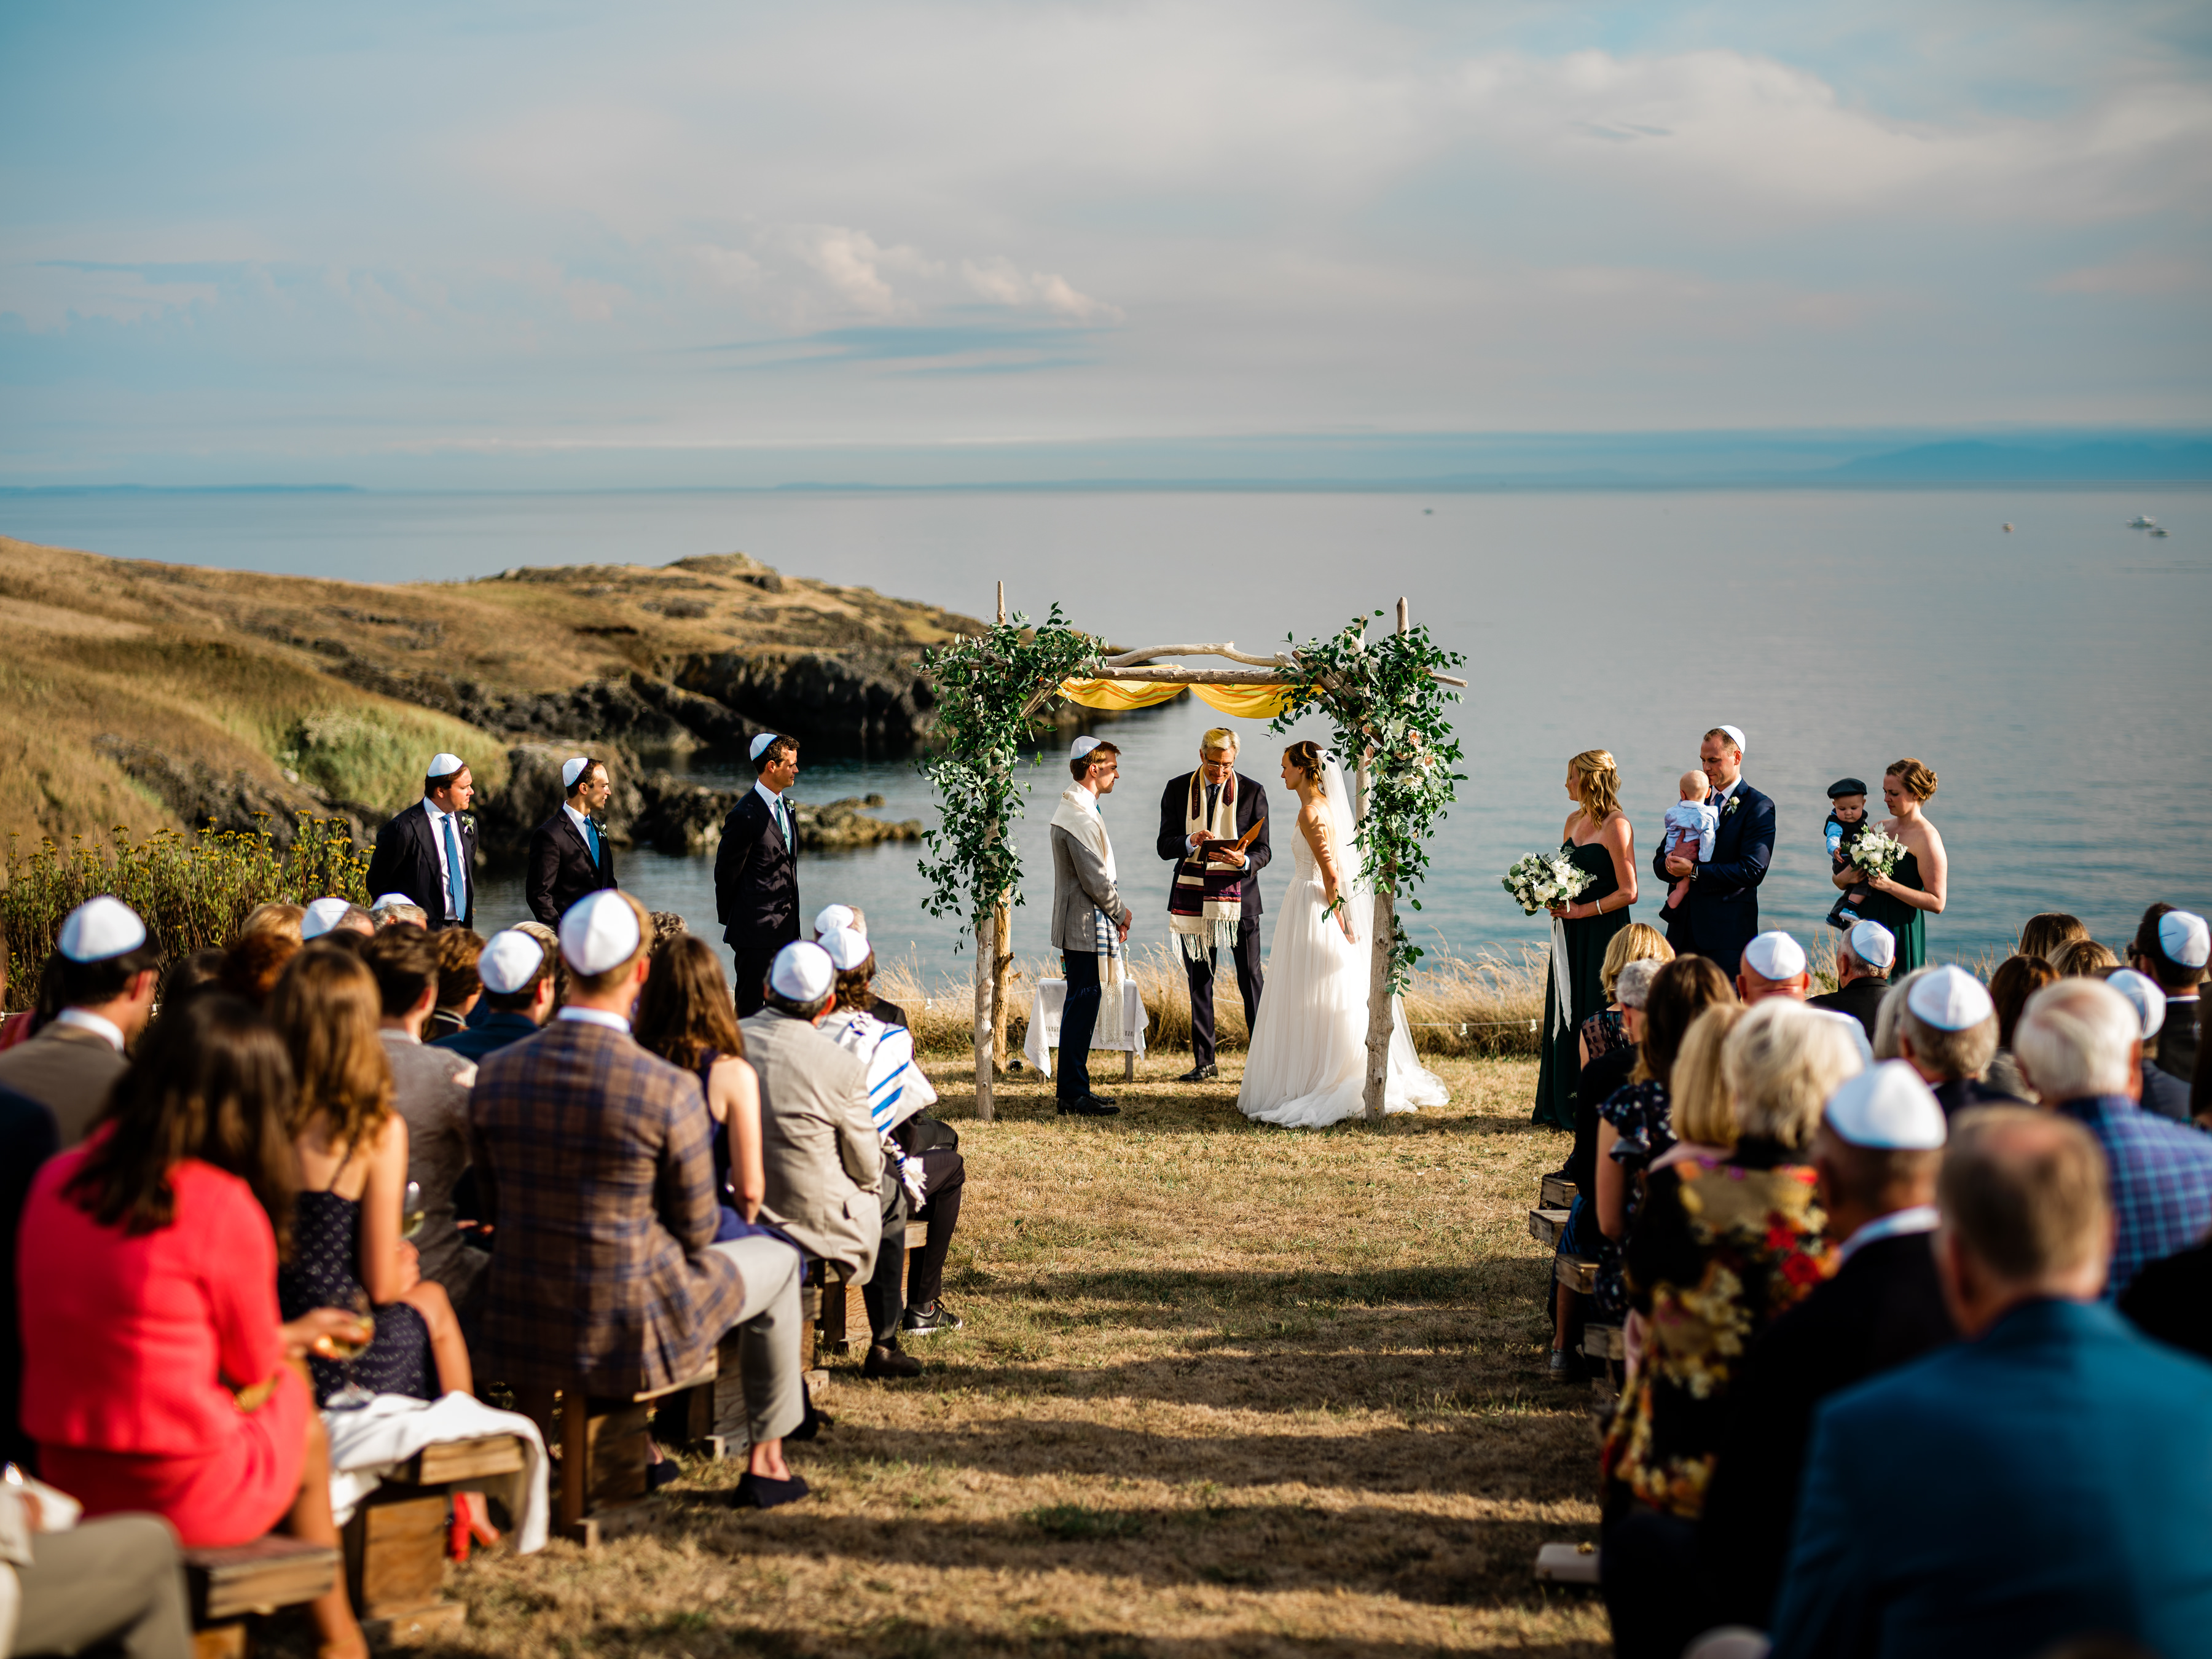 guests-seated-at-ceremony-under-seaside-chuppah-alante-photography